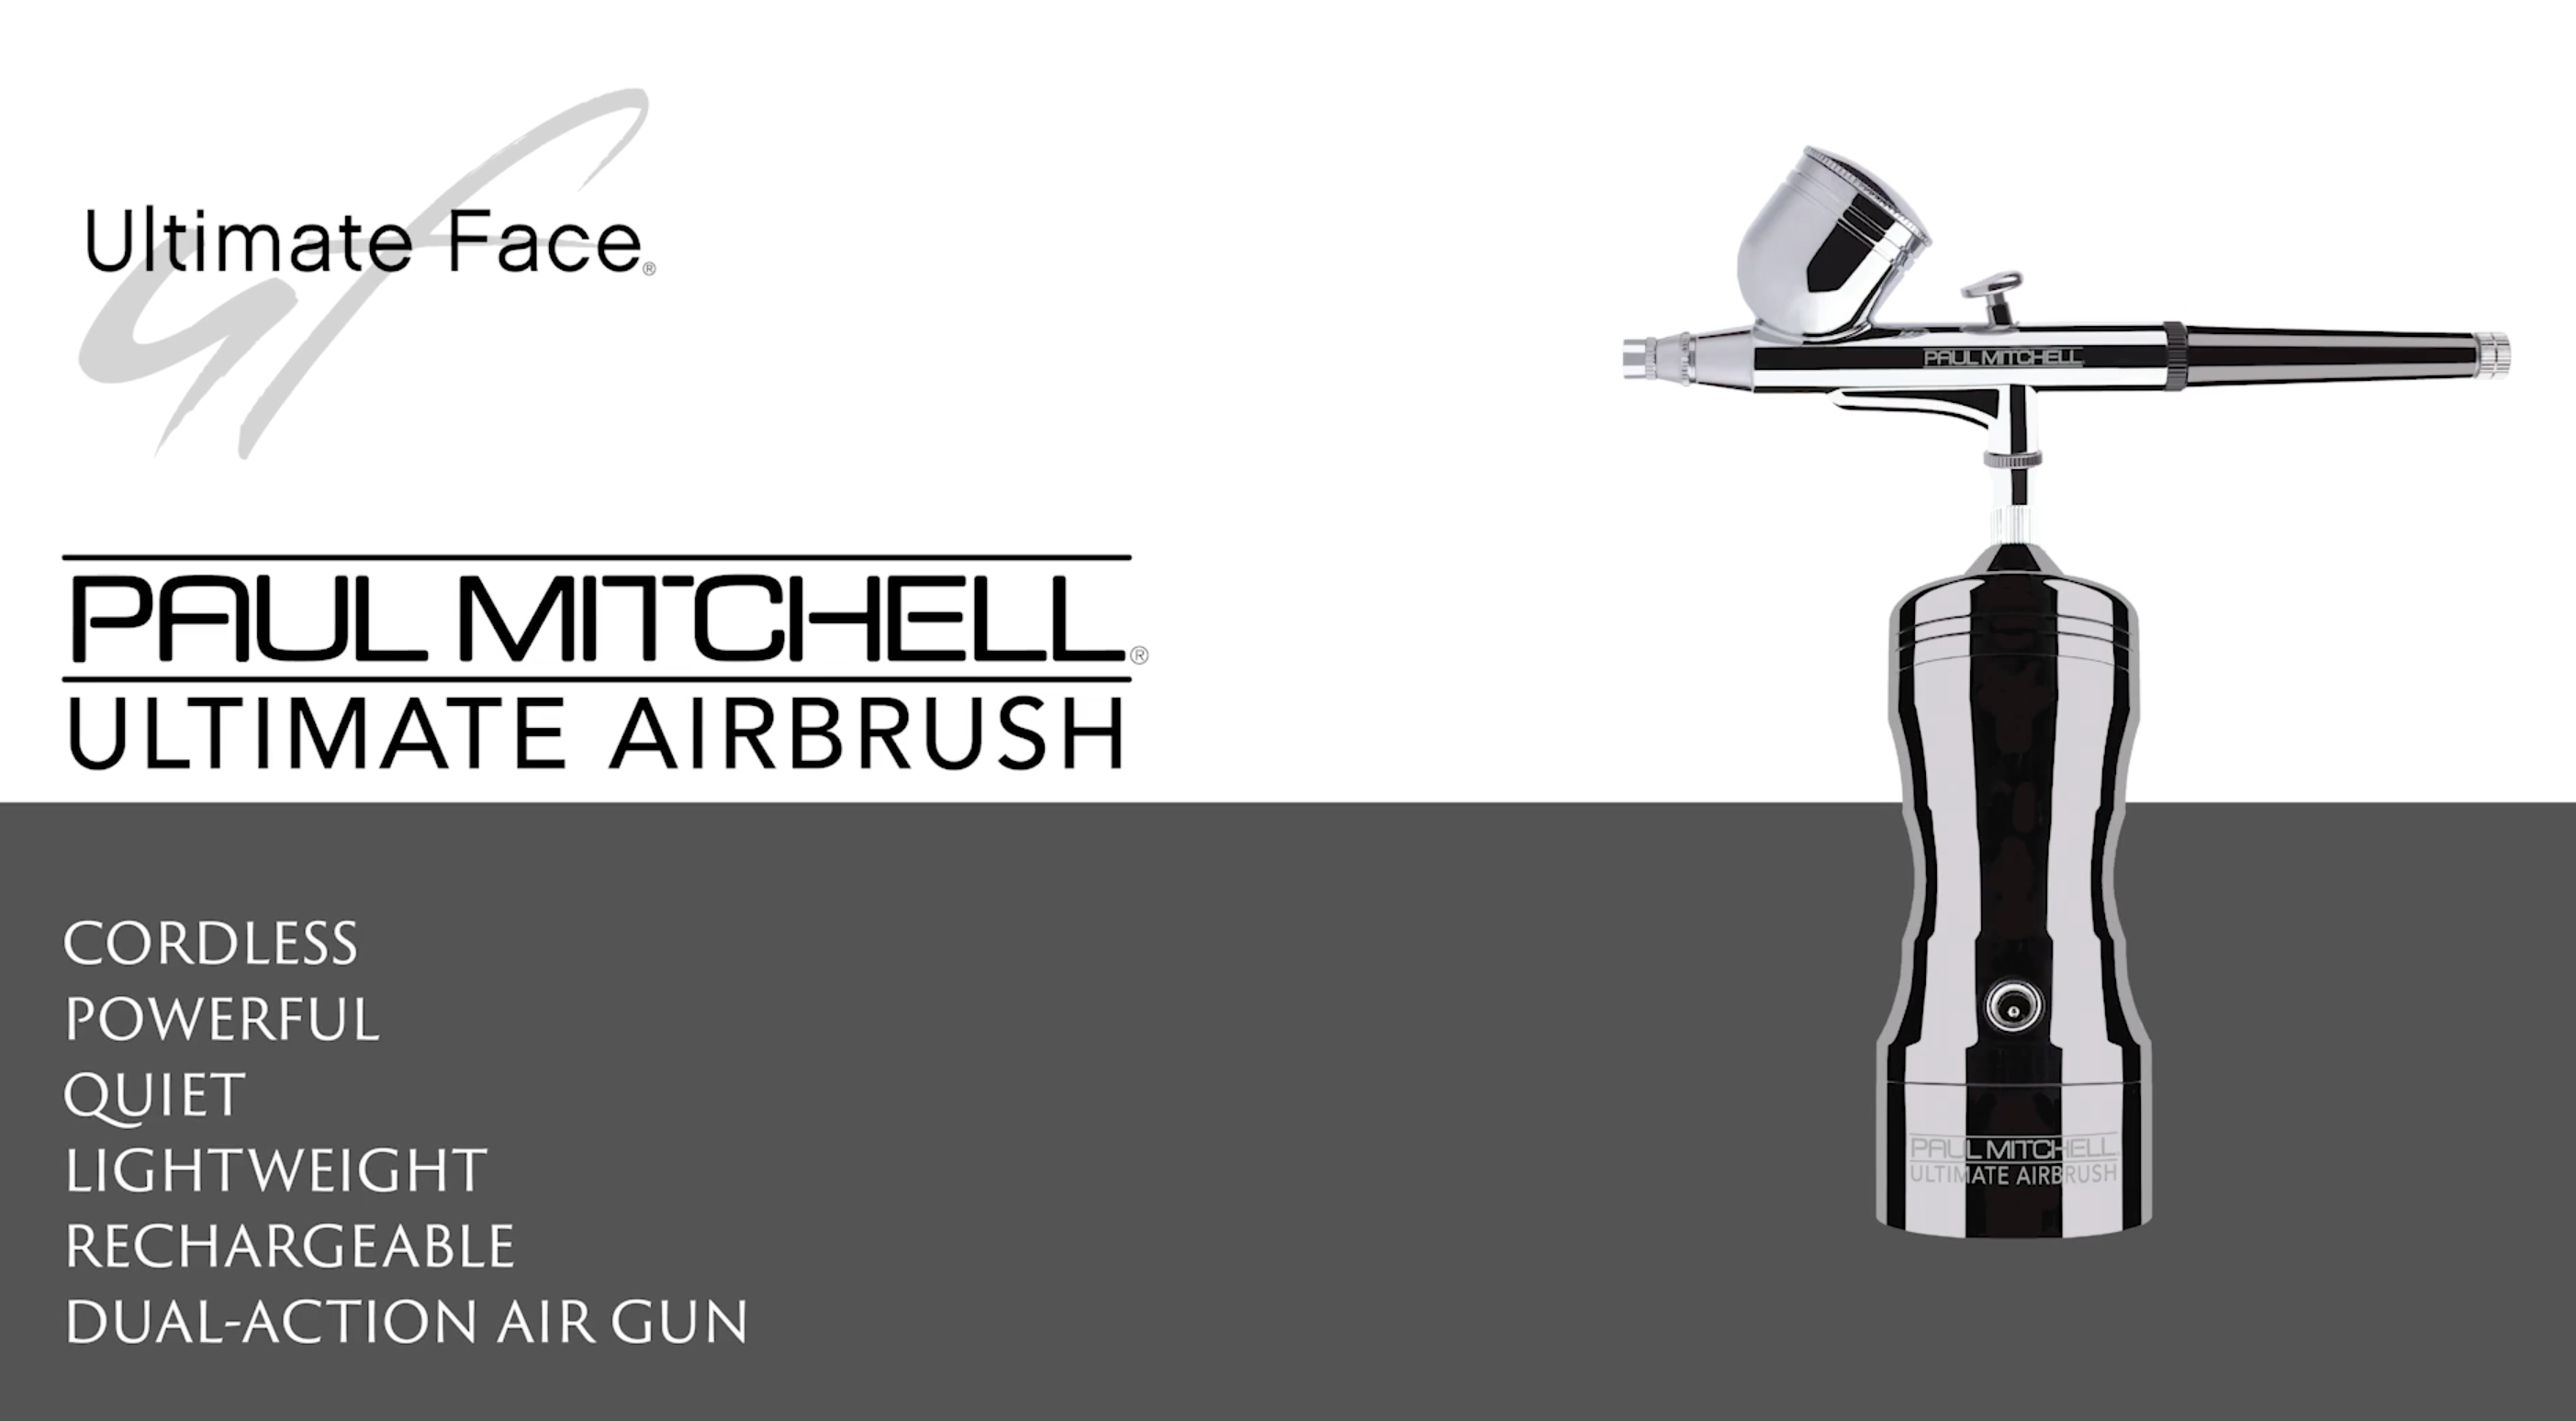 Paul Mitchell Ultimate Airbrush Product Knowledge